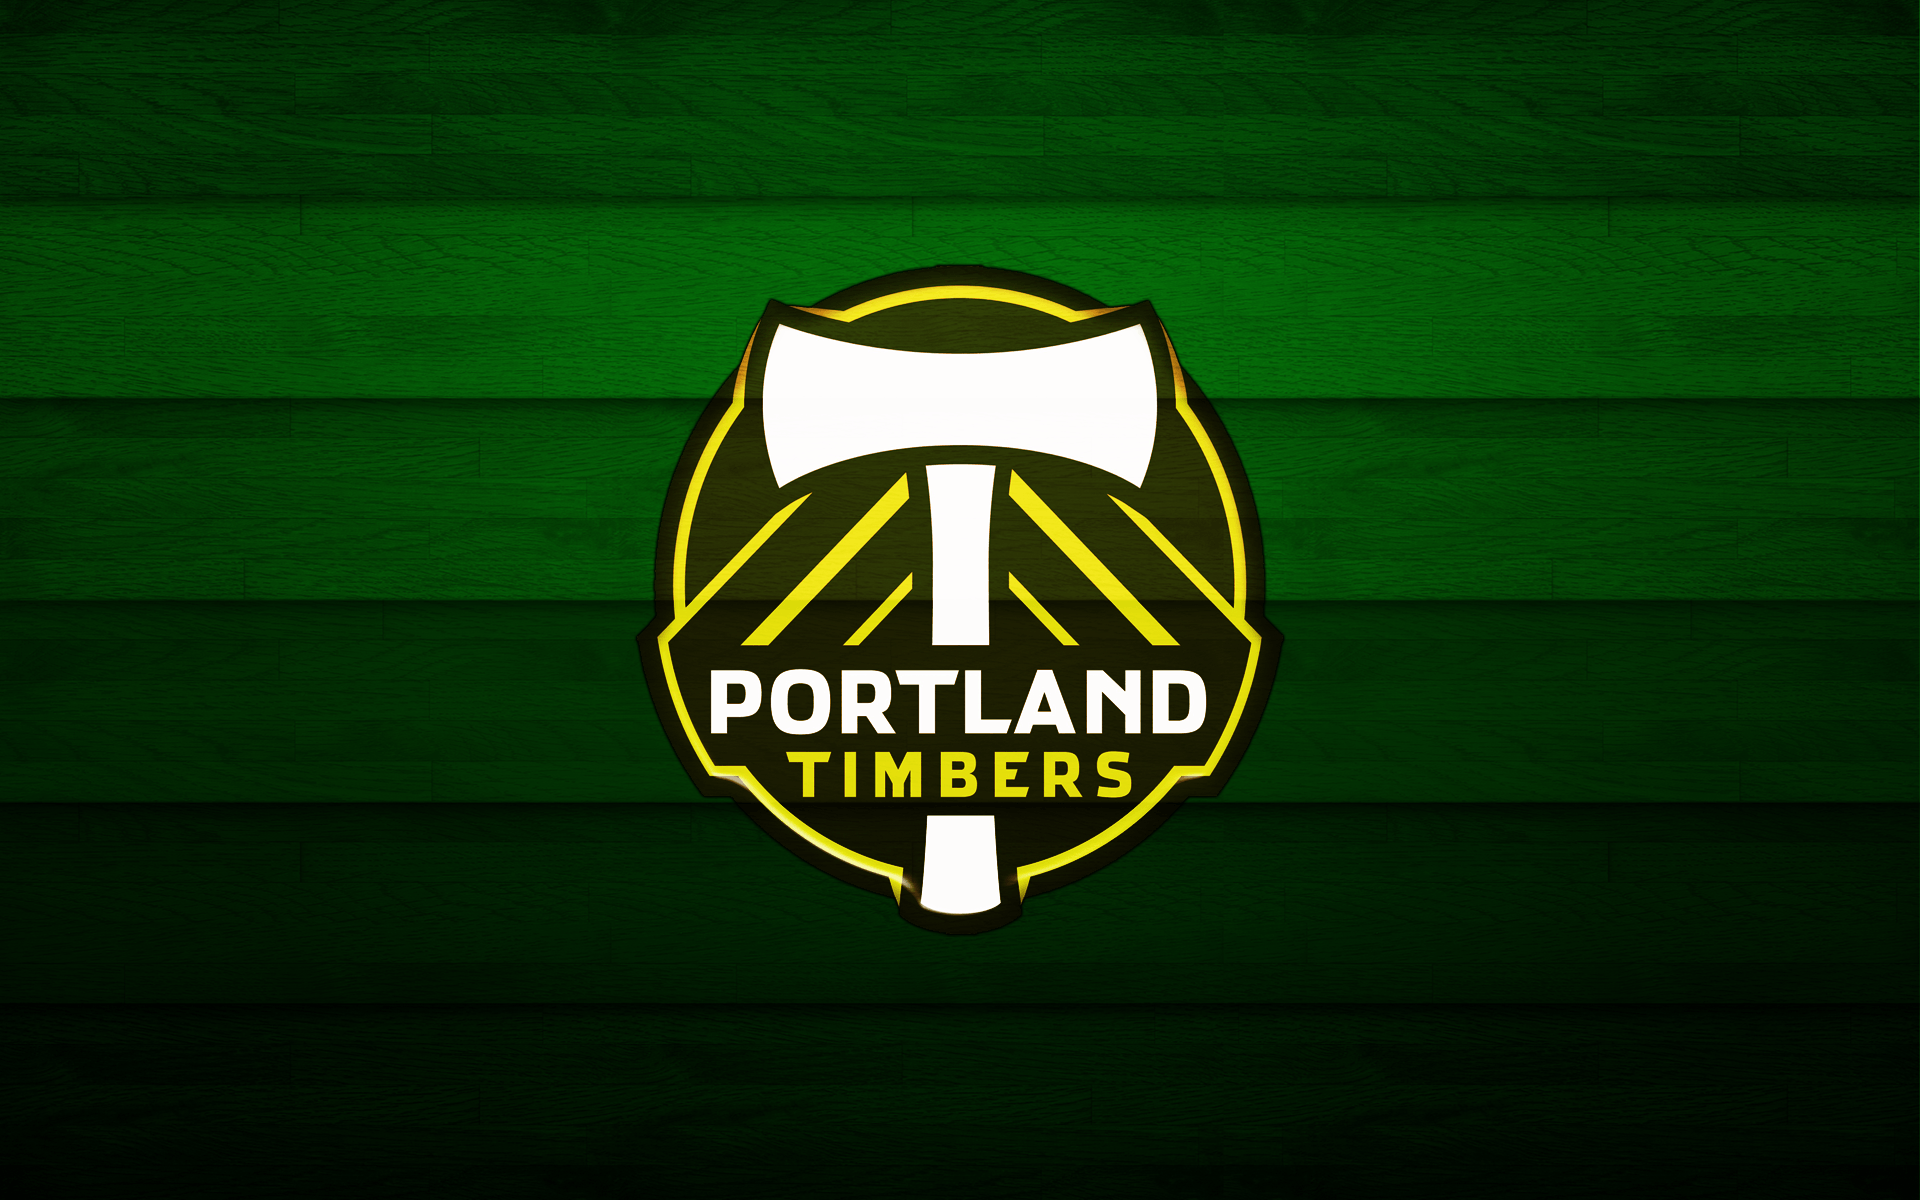 Portland Timbers Wood Wallpapers HD Wallpapers